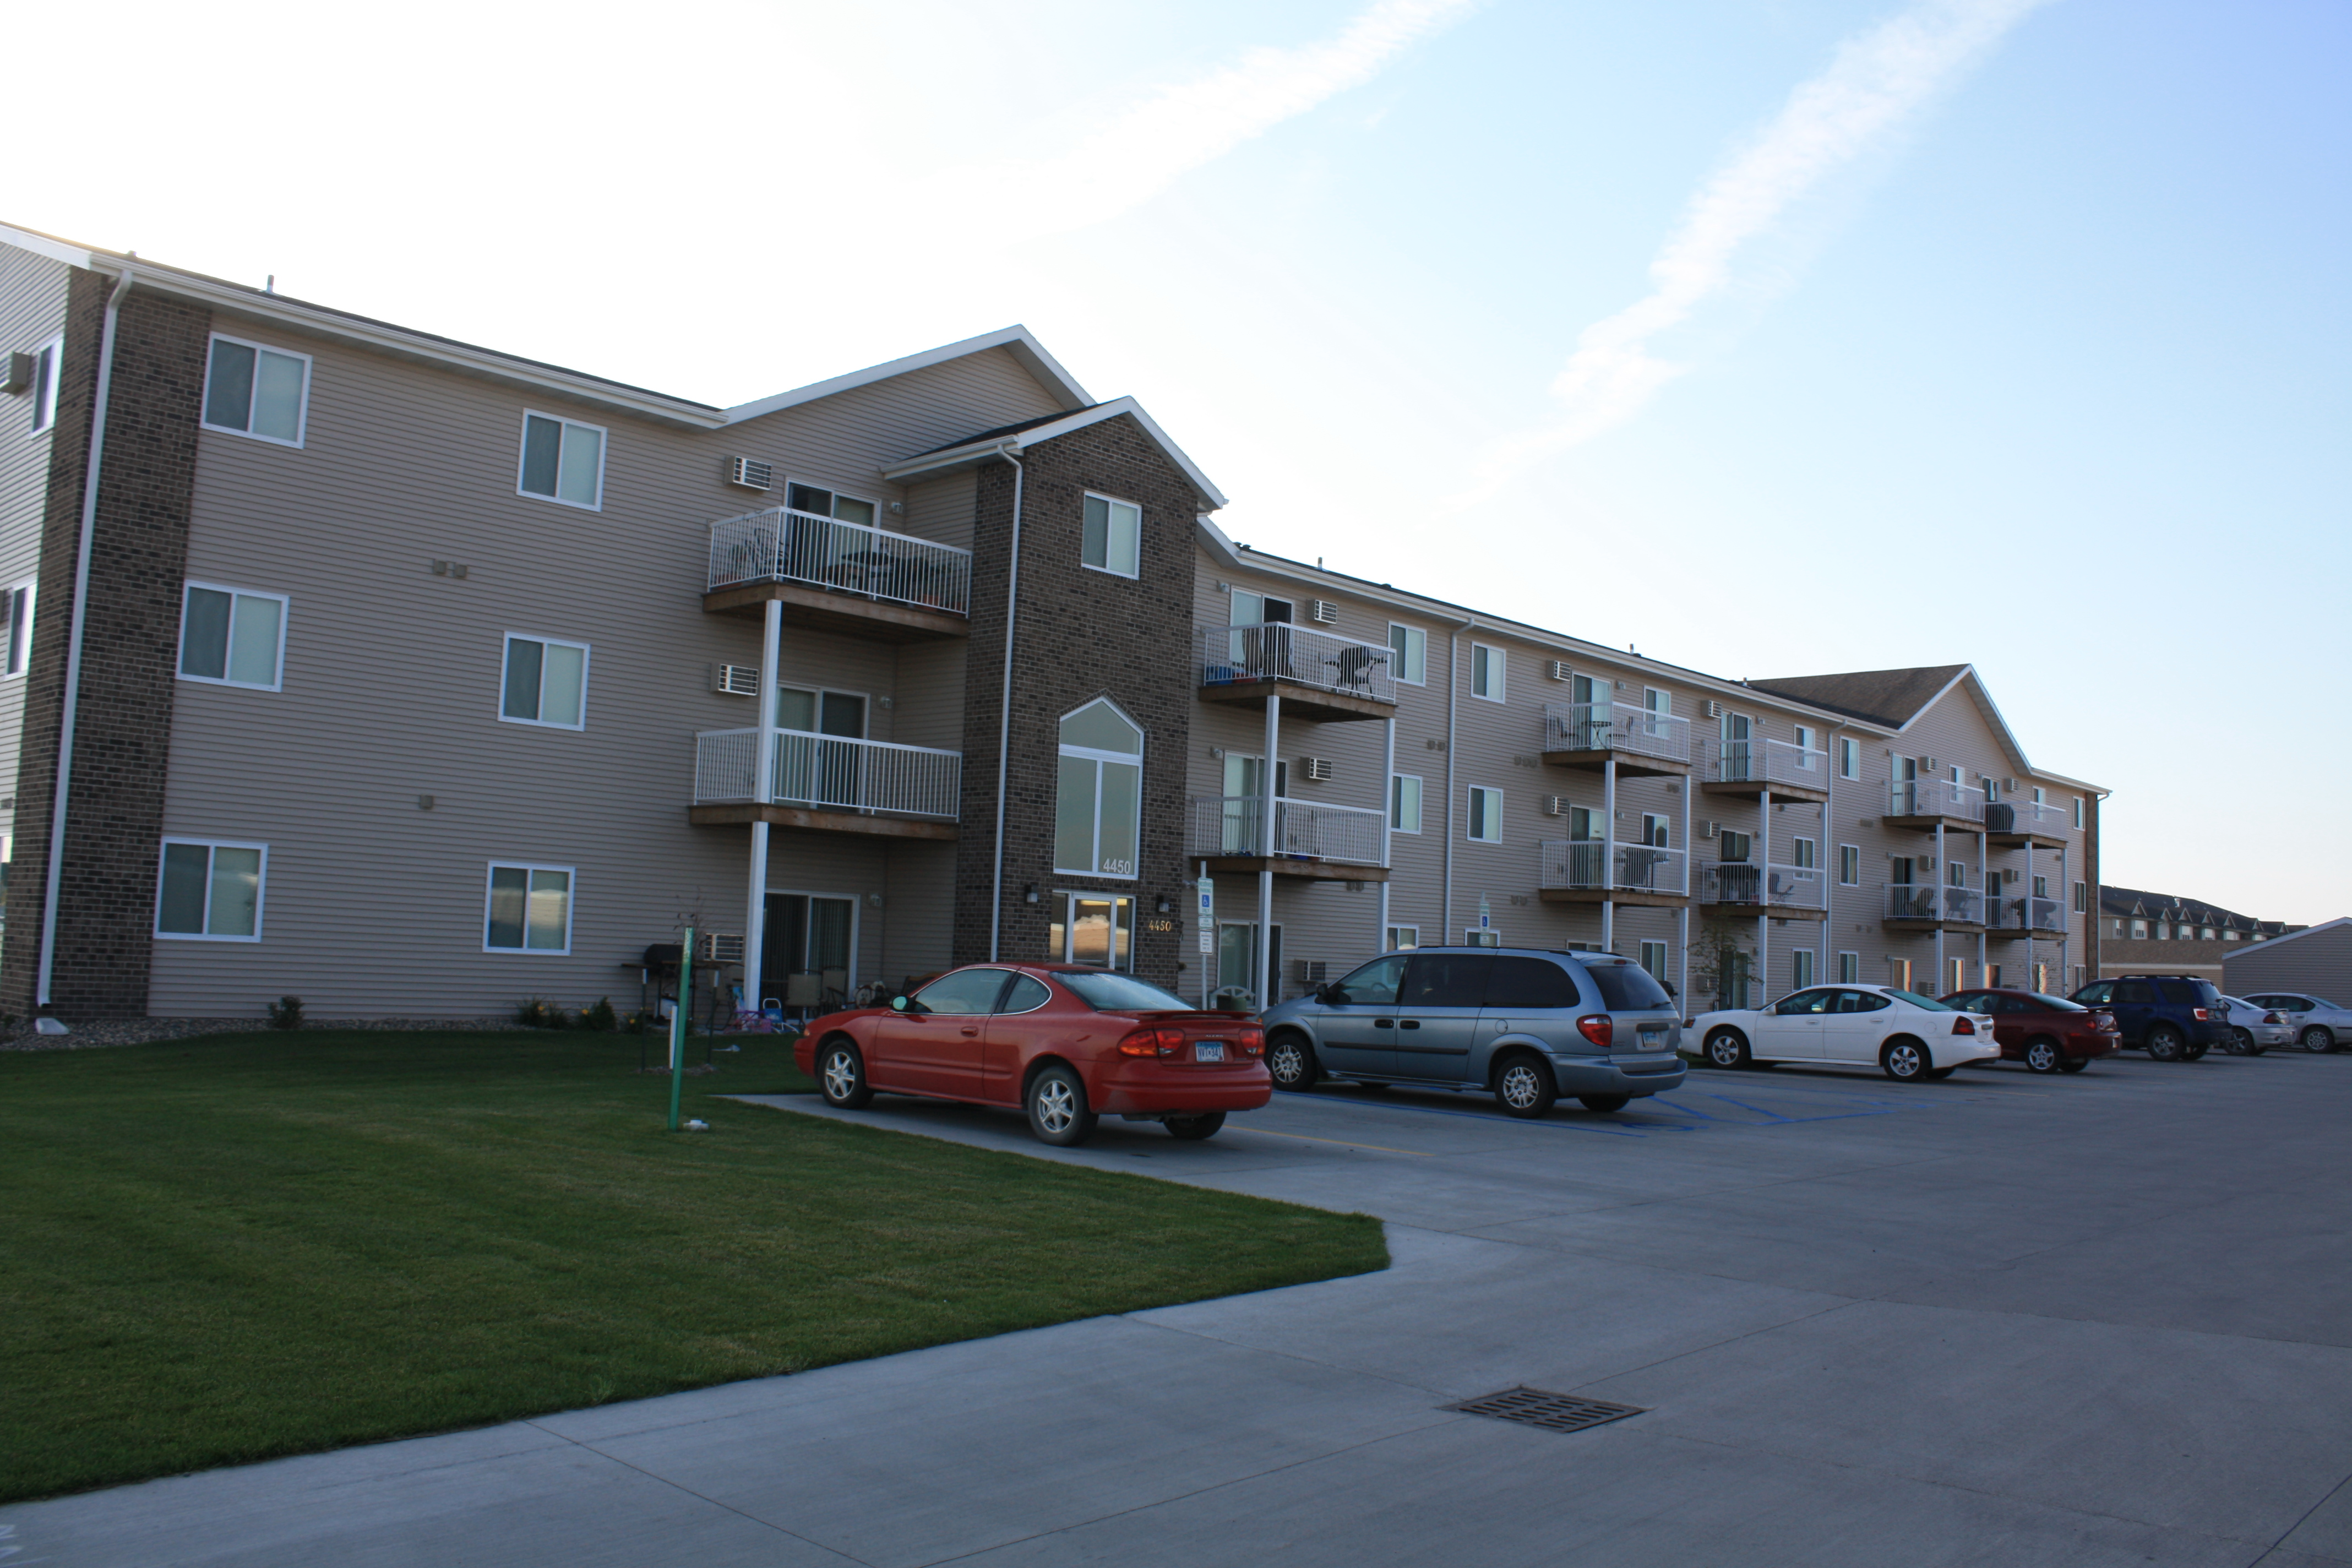 4 Bedroom Houses Rent Fargo Nd 1 Bedroom Apartments Fargo Nd 28 Images 620 9th Ave N